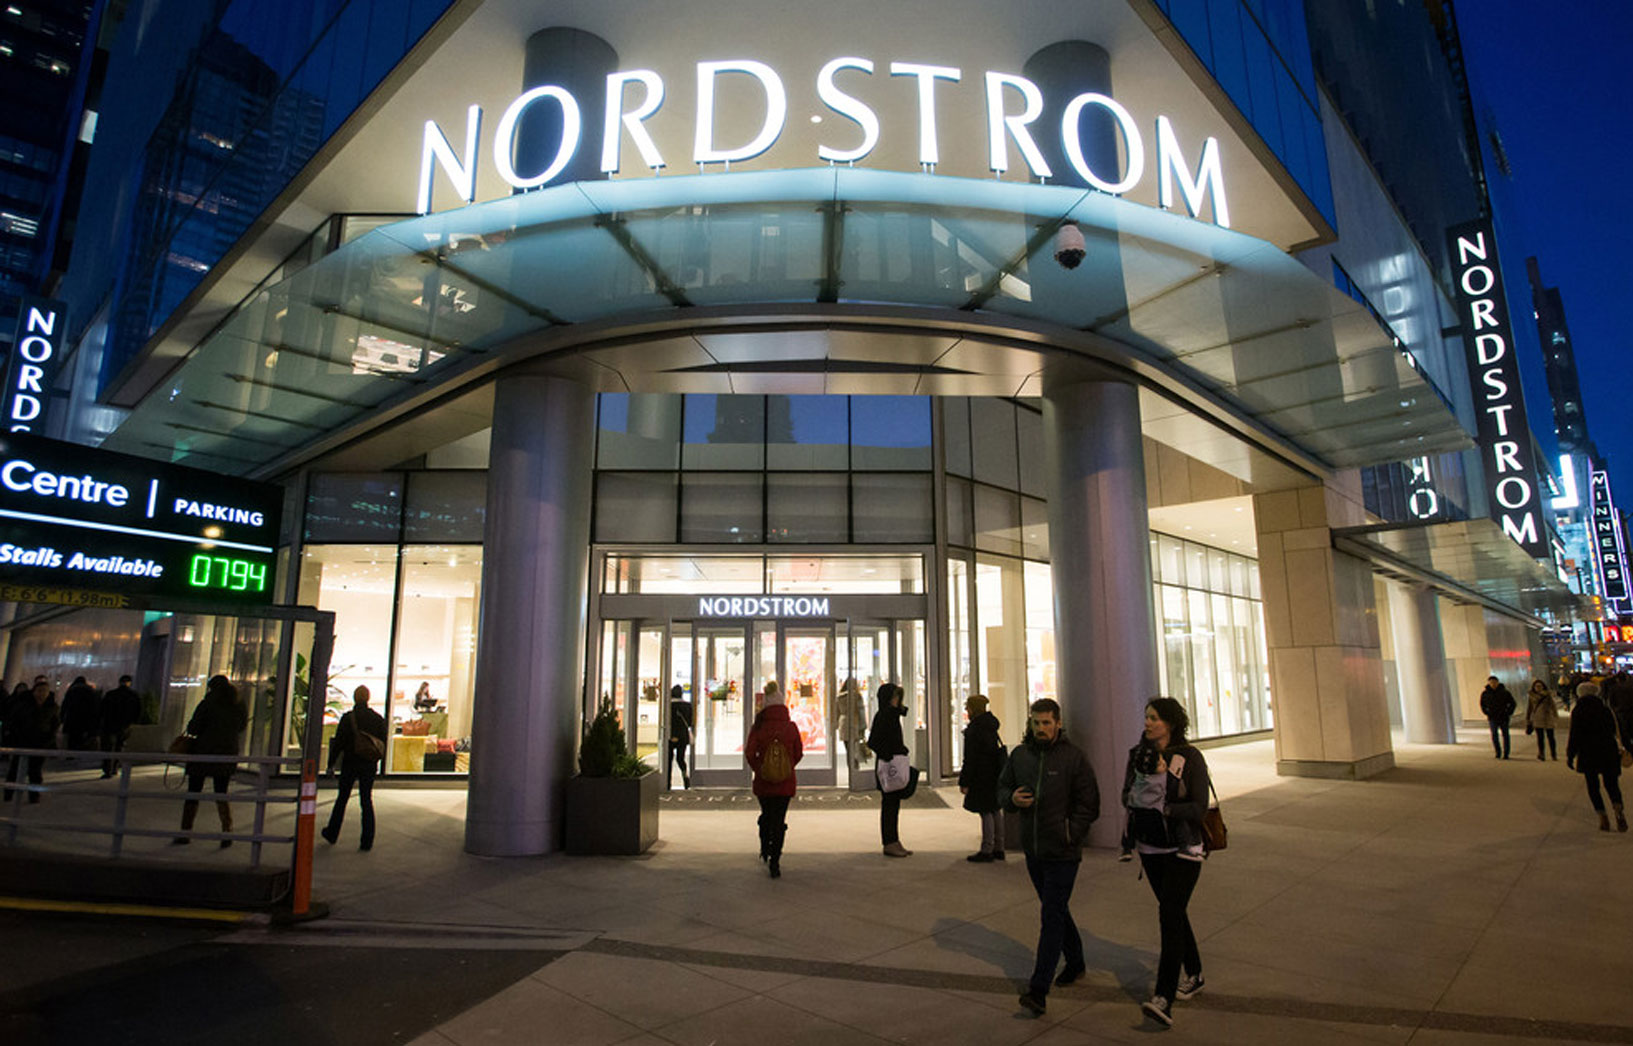 Nordstrom Local is John Hagel's Experience Bazaar